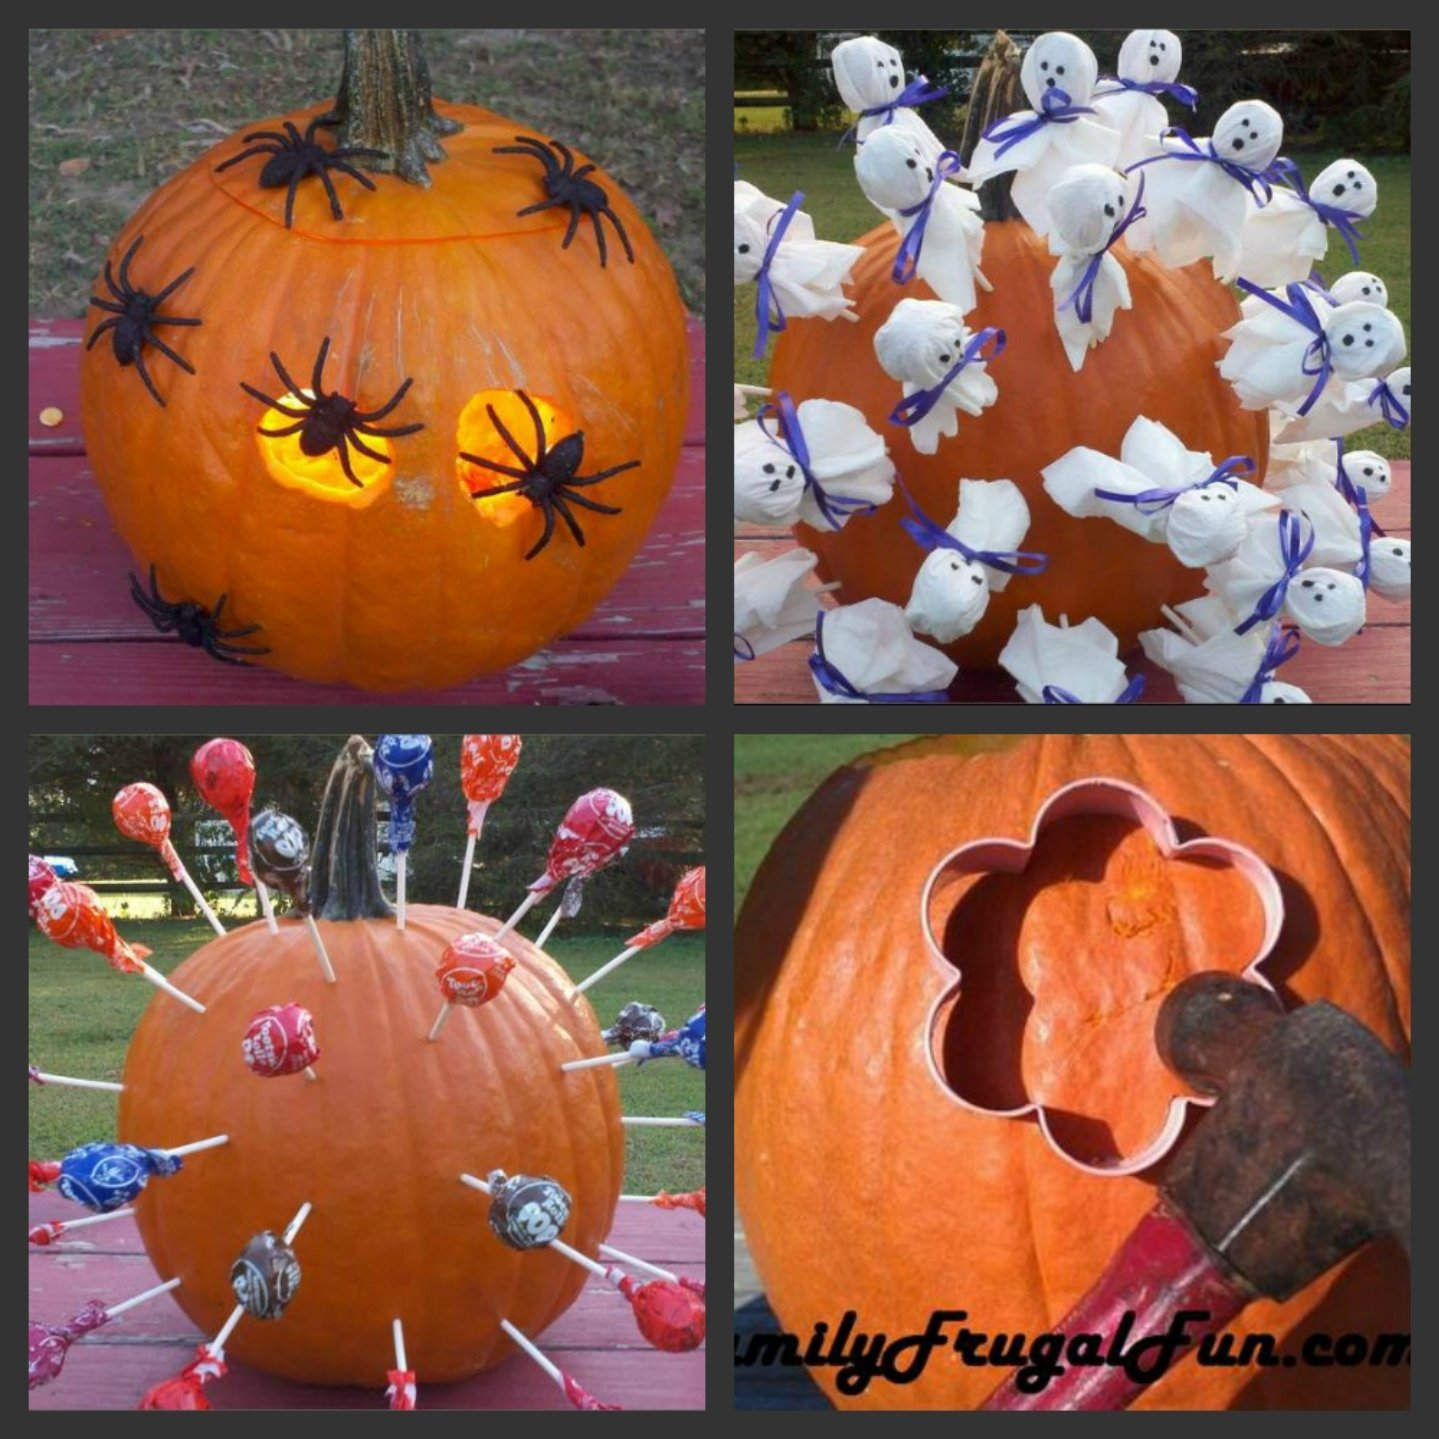 10 Attractive Pumpkin Decorating Ideas Without Carving classy your kids tohelp together with easy pumpkin decorating 2020